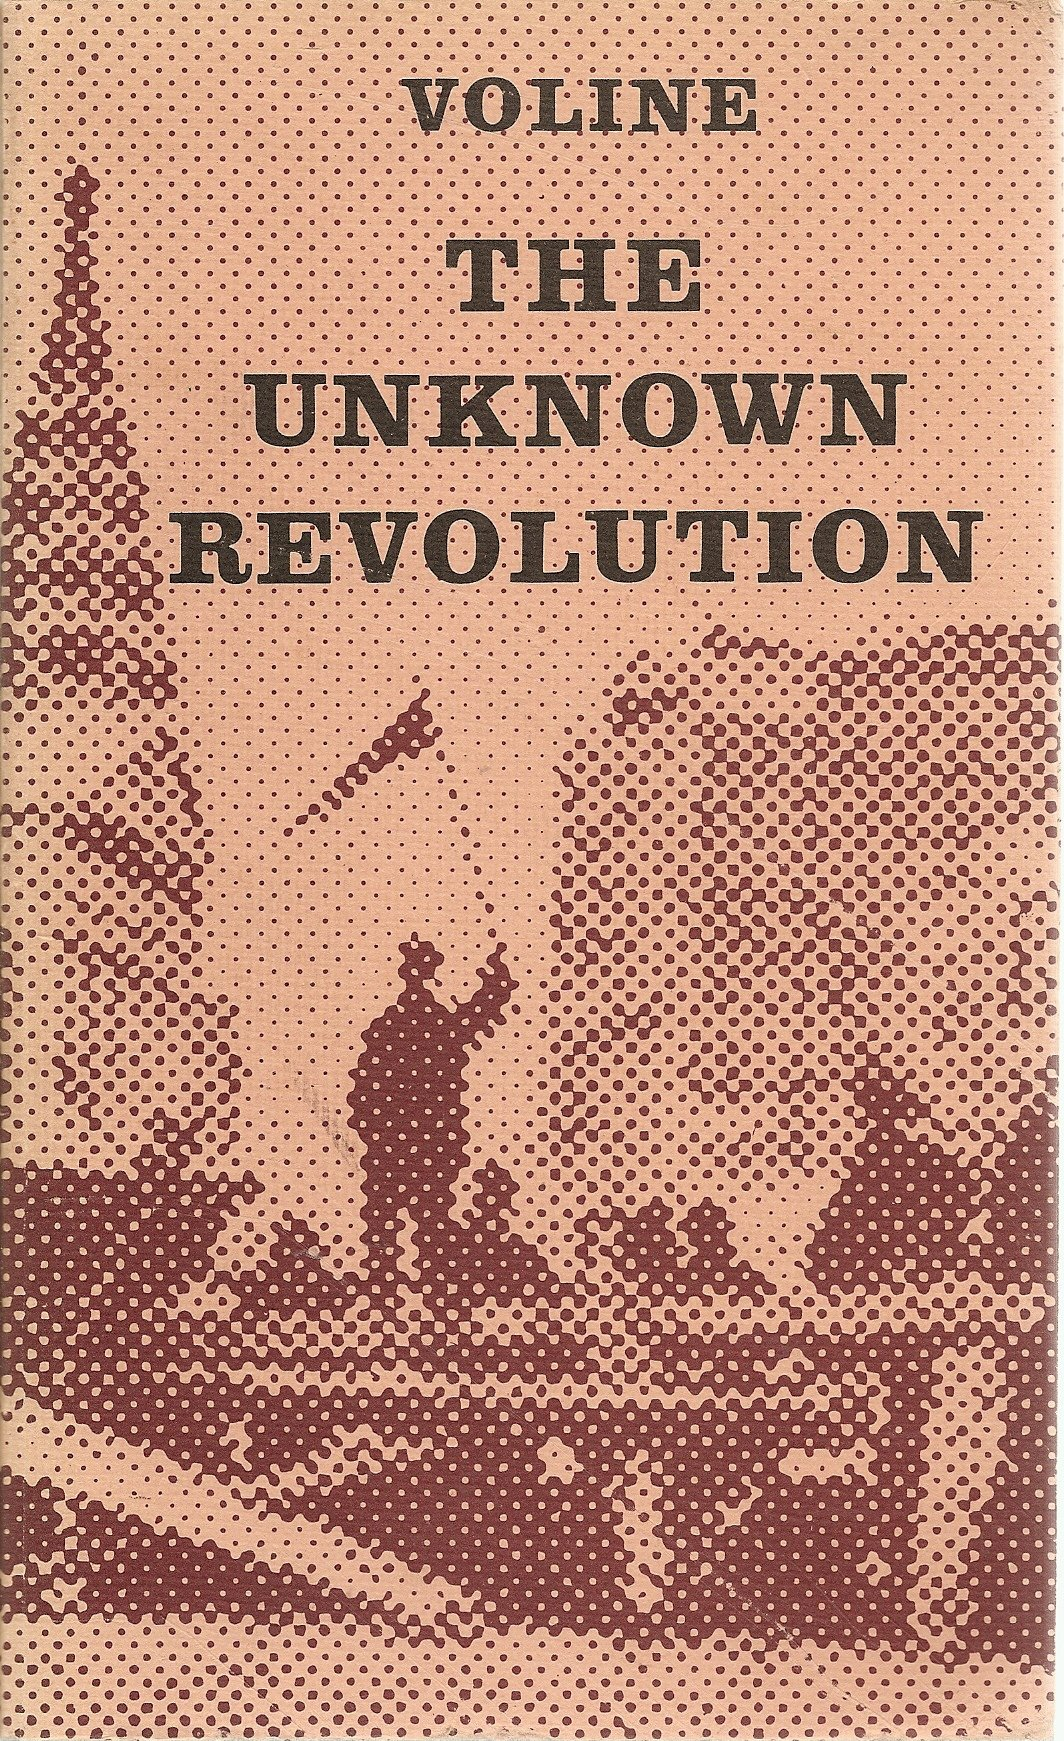 The Unknown Revolution 1917-1921, Voline